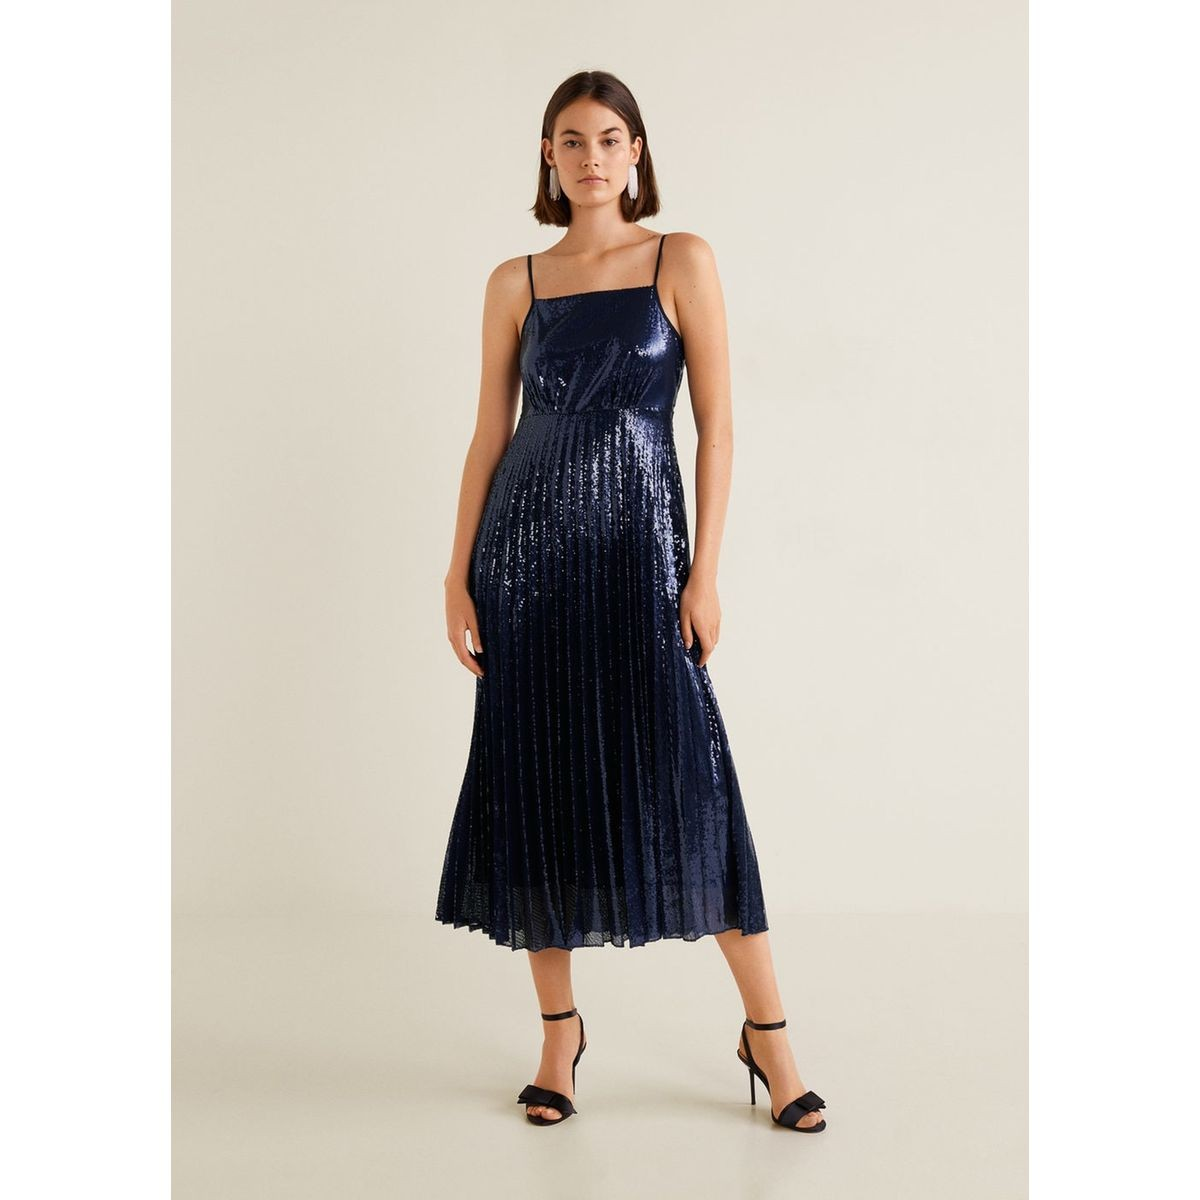 Robe Longue A Sequins Taille 42 38 36 Products Robe Longue Robe Et Fermeture Eclair